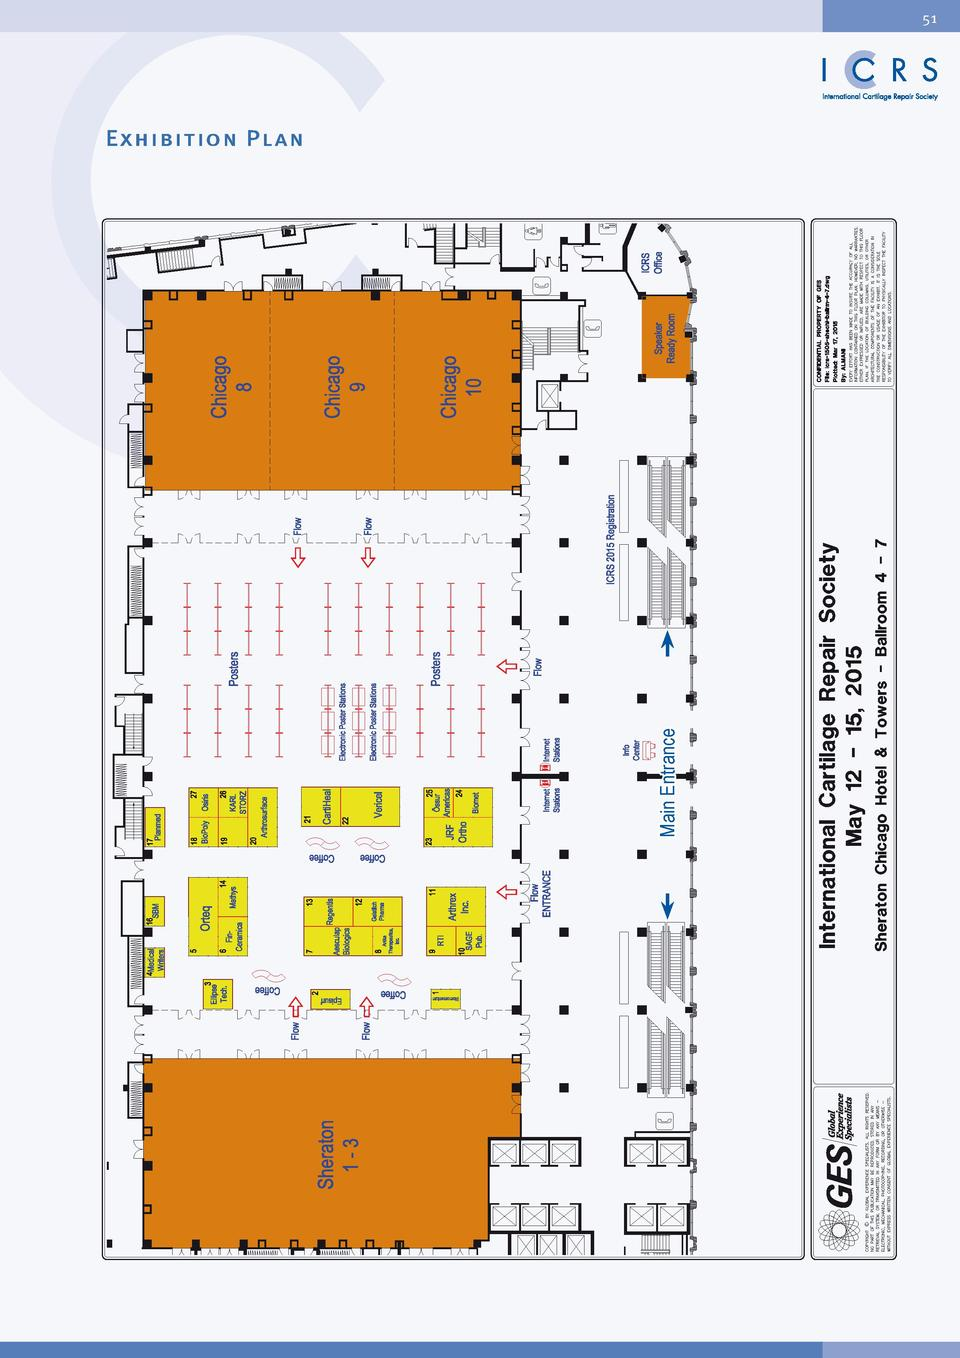 Final Programme Icrs15 World C Traveltime Sl 10 03 Laptop Case Orange 51 Main Entrance Exhibition Plan